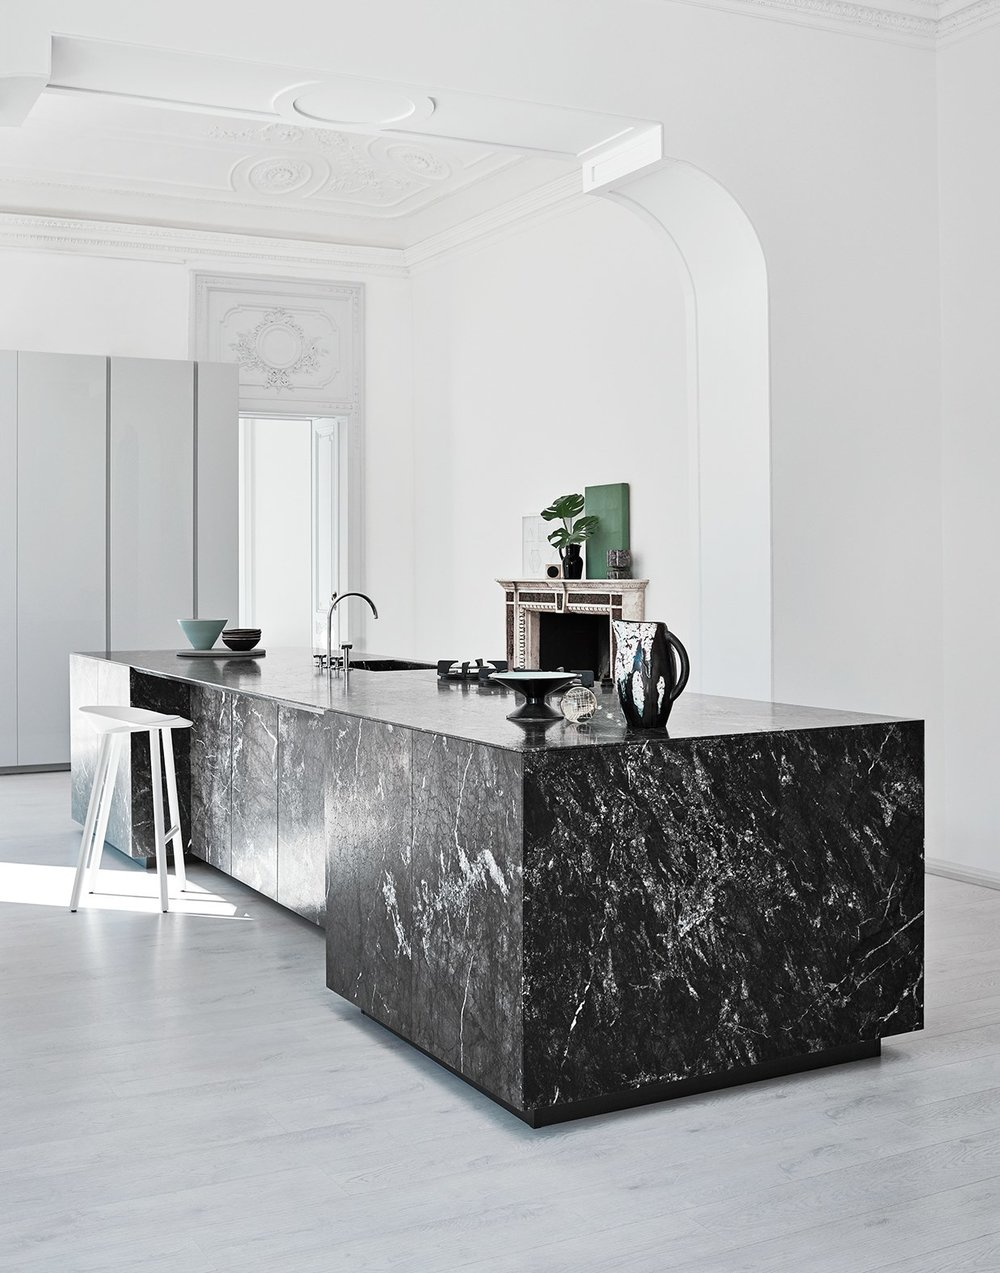 The choice of material and design for this kitchen island has a powerful and sculptural appearance, set in a period property, creating a contrasting unexpected element. The island is in Grey Saint Laurent Dark Marble.